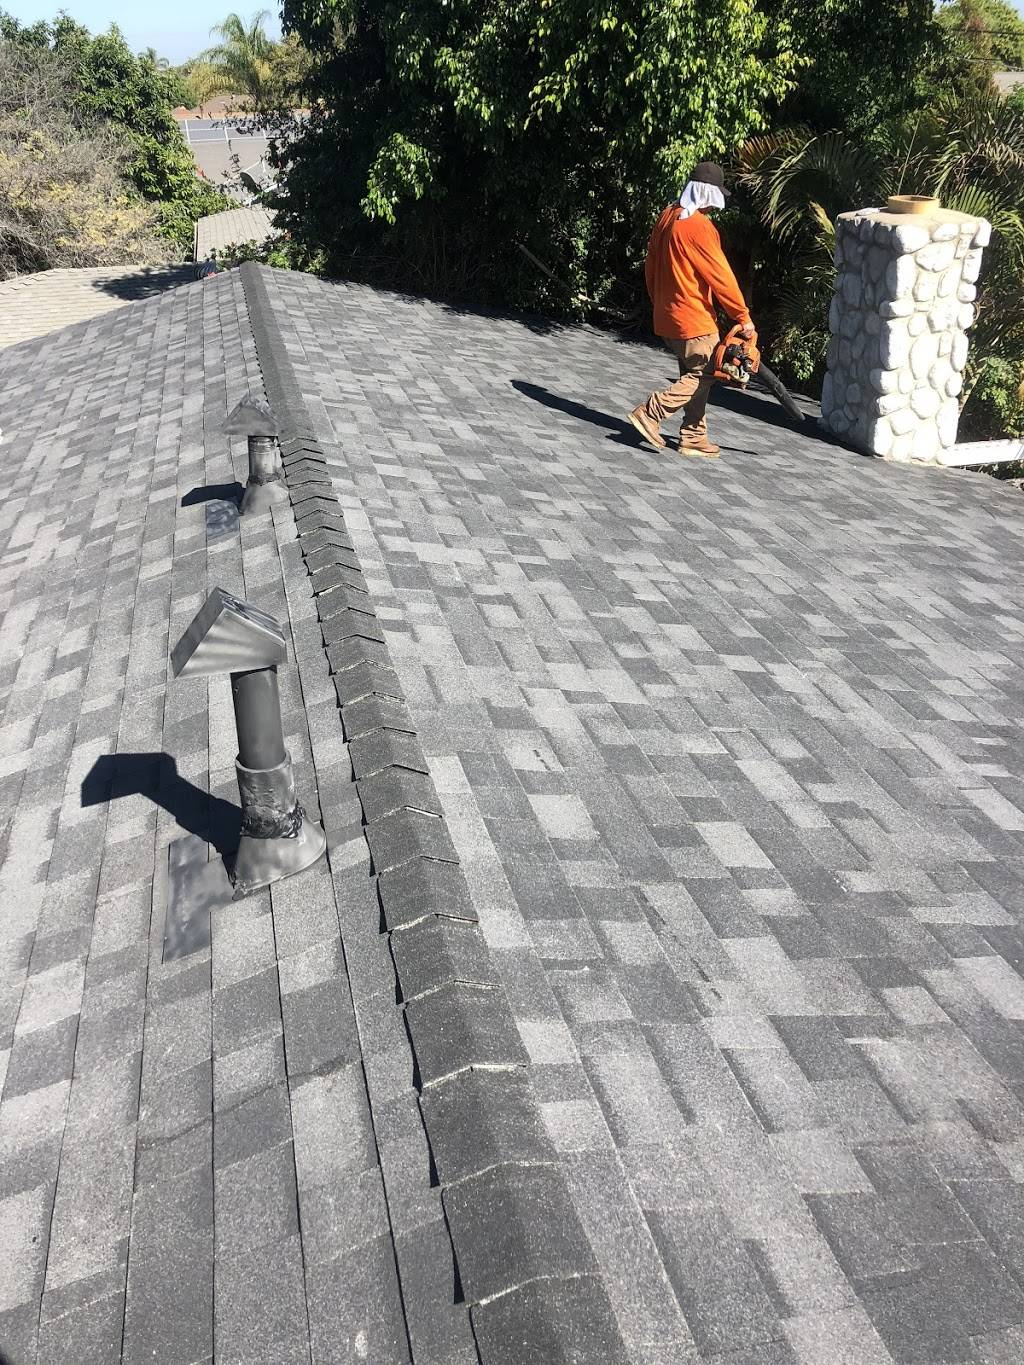 Ayon's Roofing - roofing contractor  | Photo 8 of 8 | Address: 1713 E Sycamore St, Anaheim, CA 92805, USA | Phone: (714) 944-3340